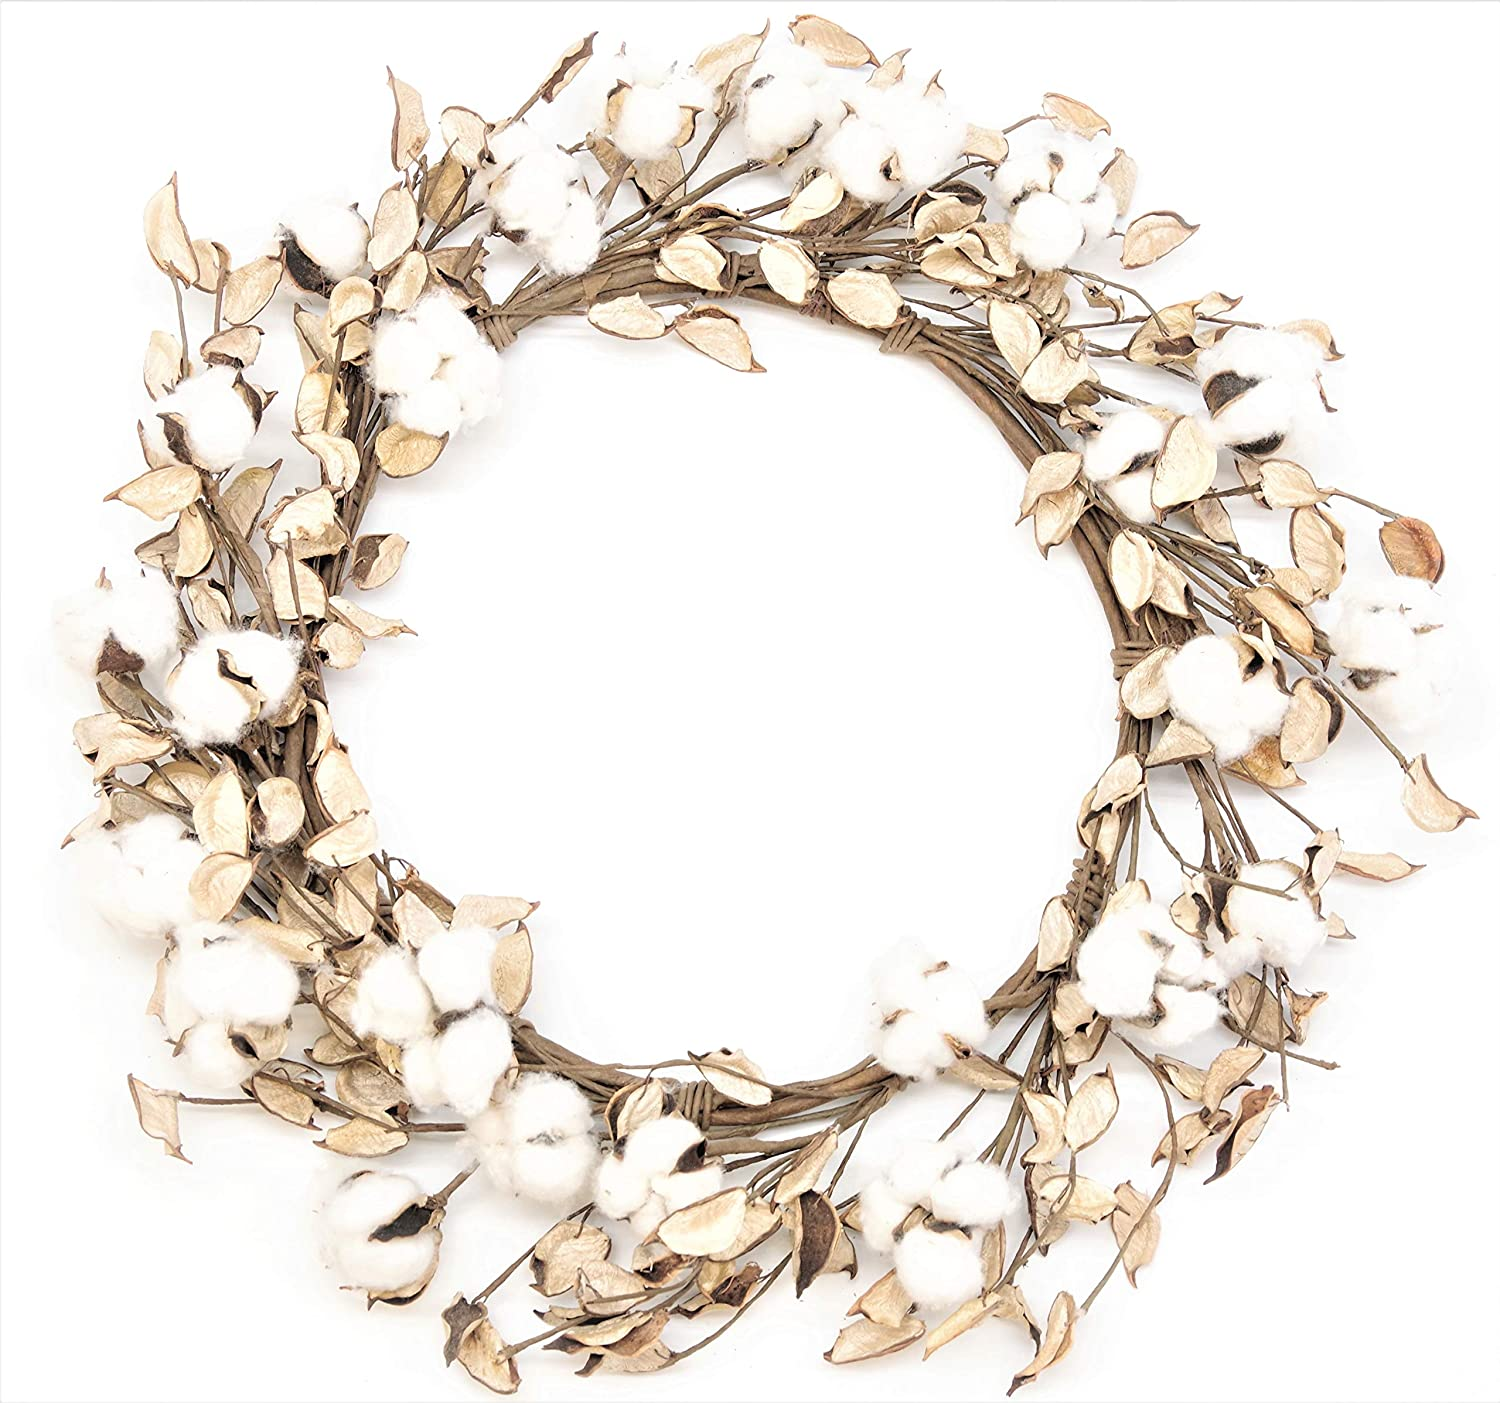 Silvercloud Trading Co. Real Cotton and Husk Wreath - 16